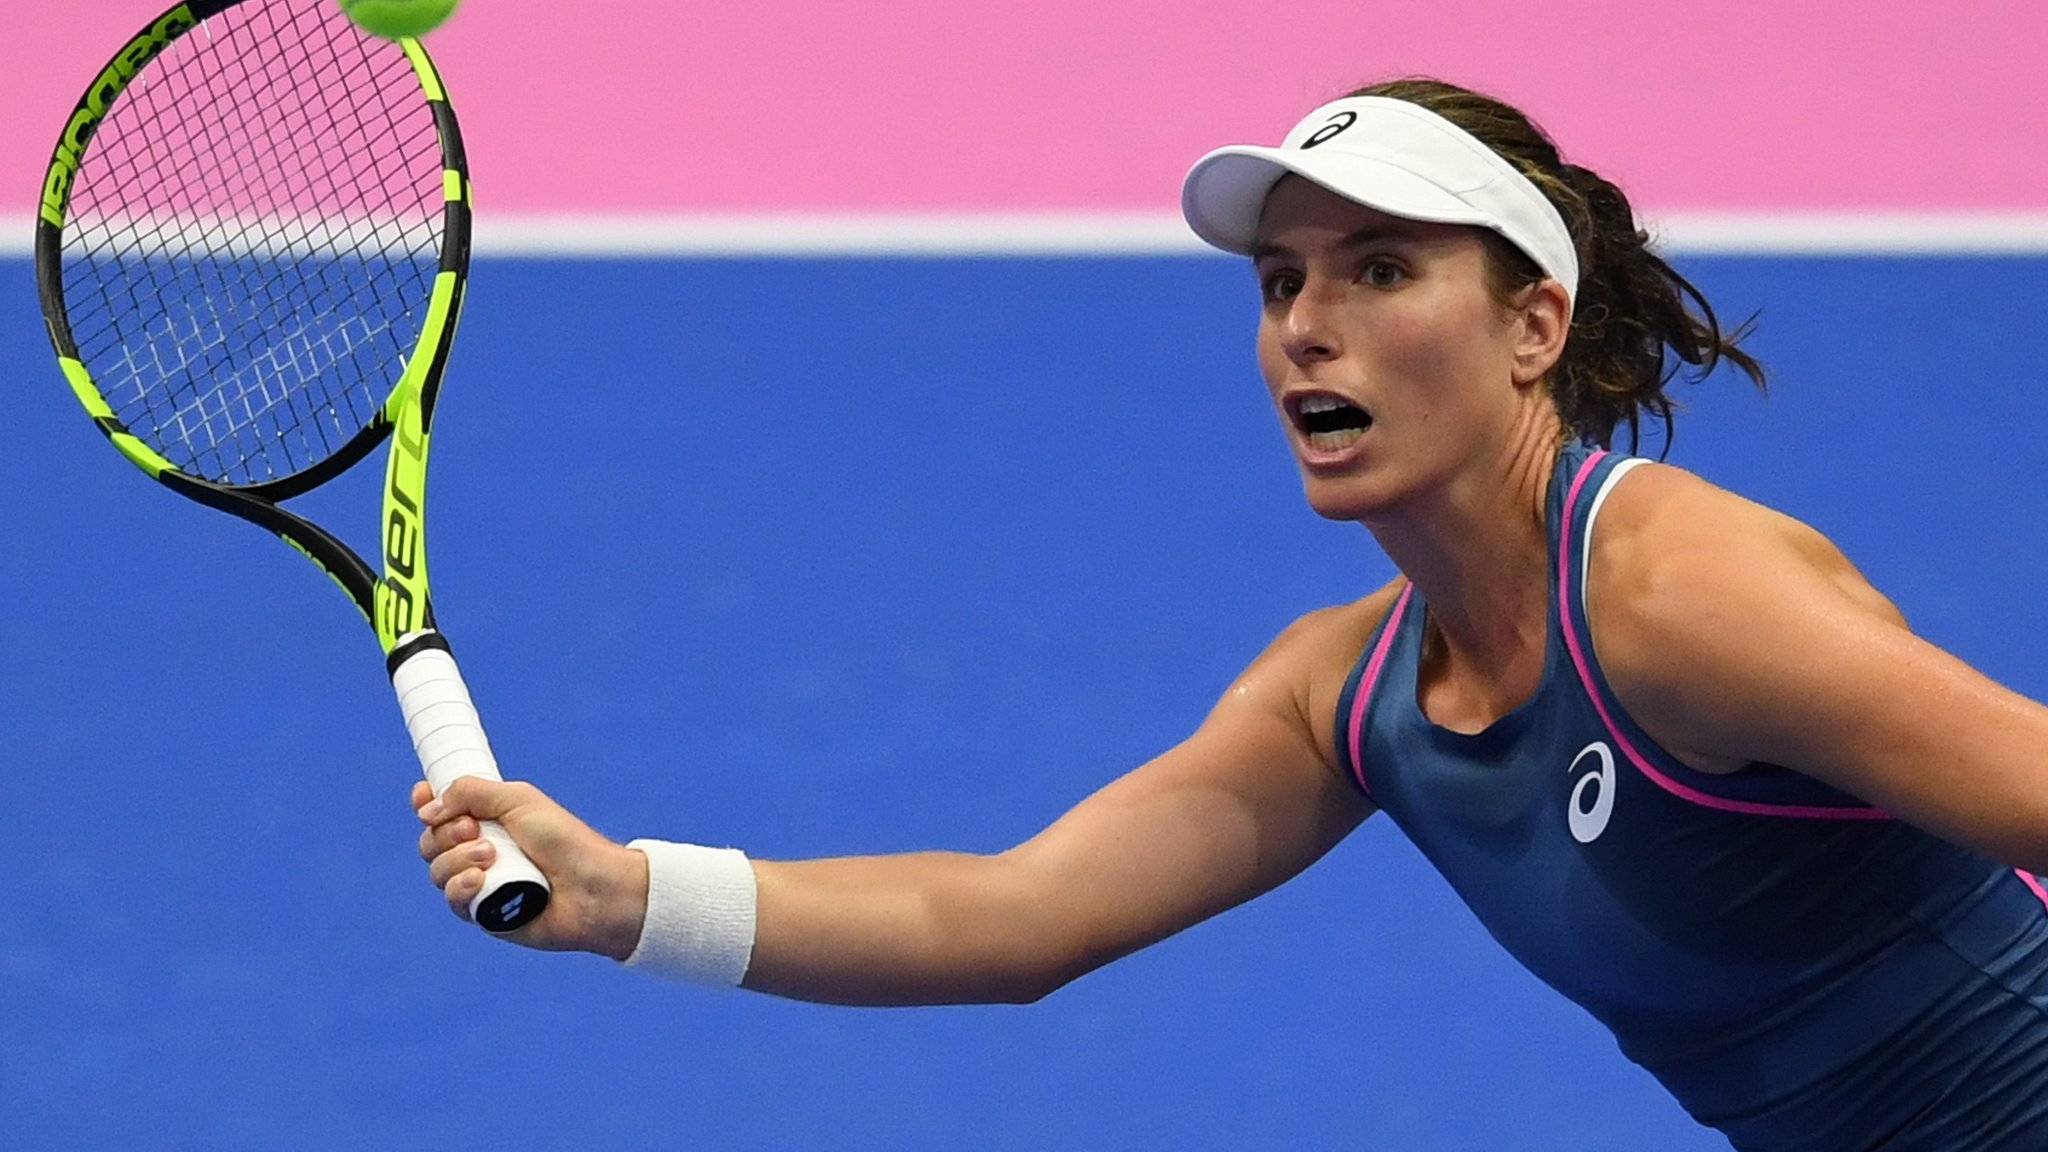 Kremlin Cup: Johanna Konta beats Daria Gavrilova to reach last eight